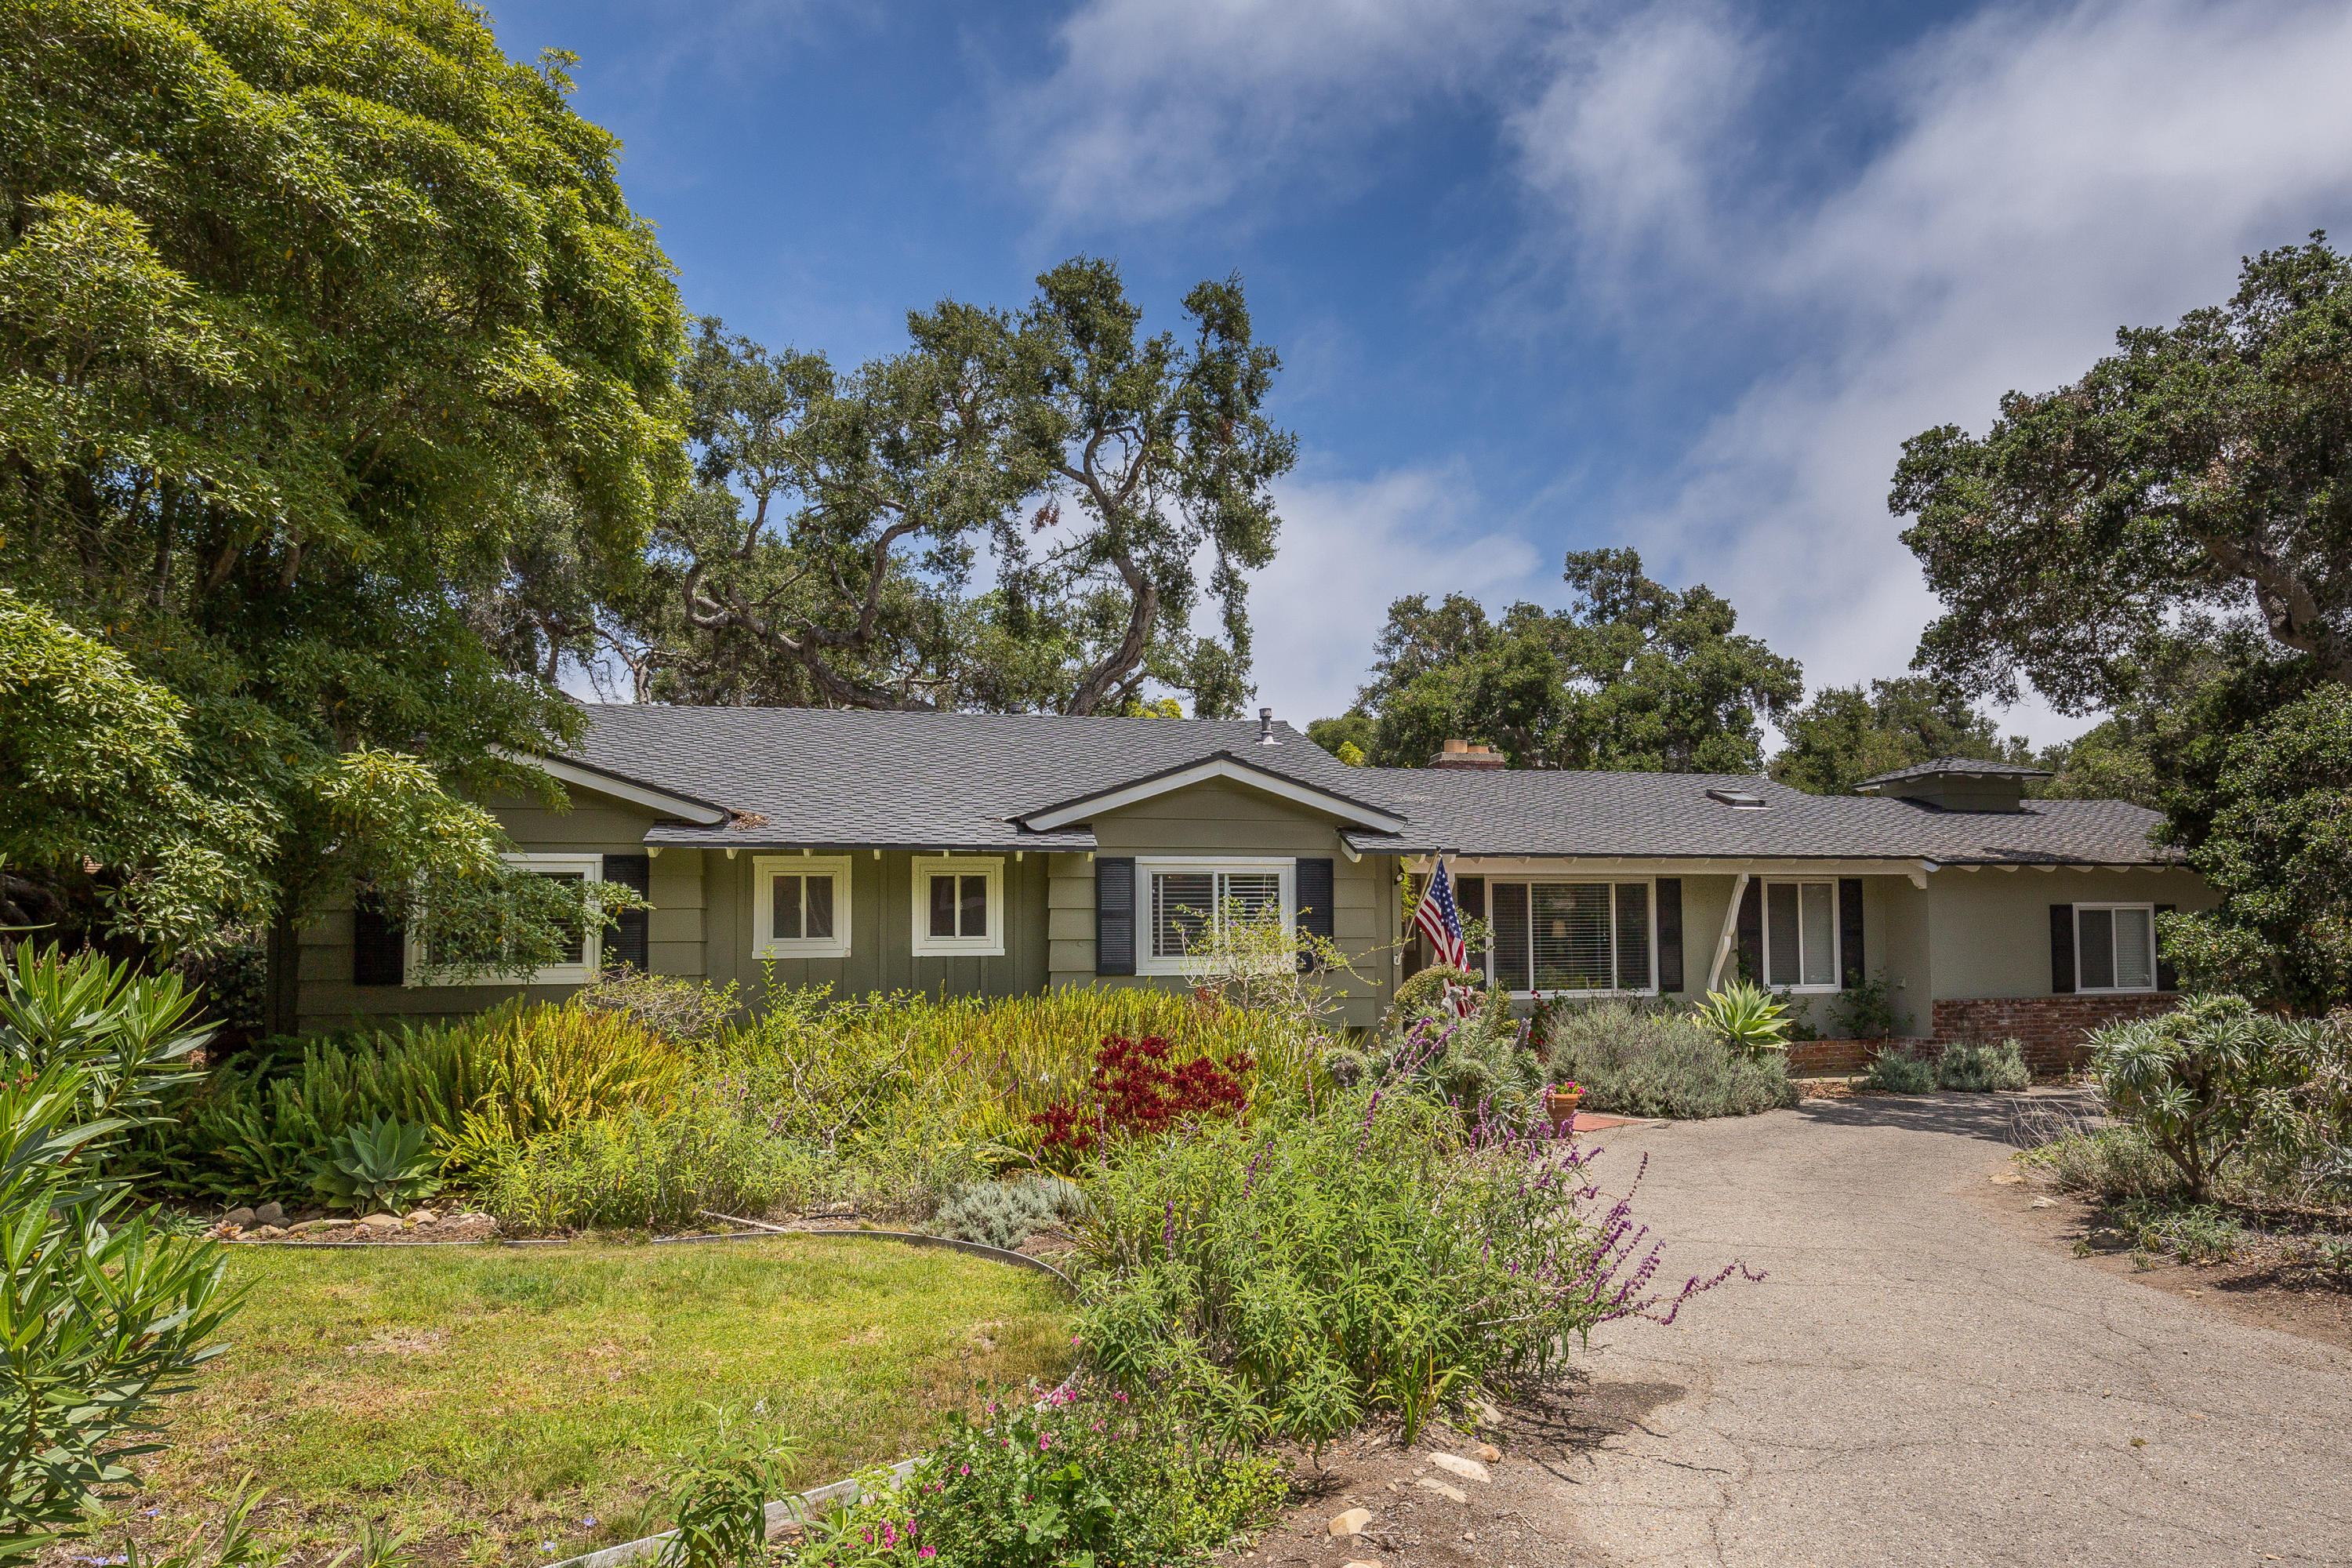 Property photo for 166 Santa Isabel Ln Montecito, California 93108 - 15-2228